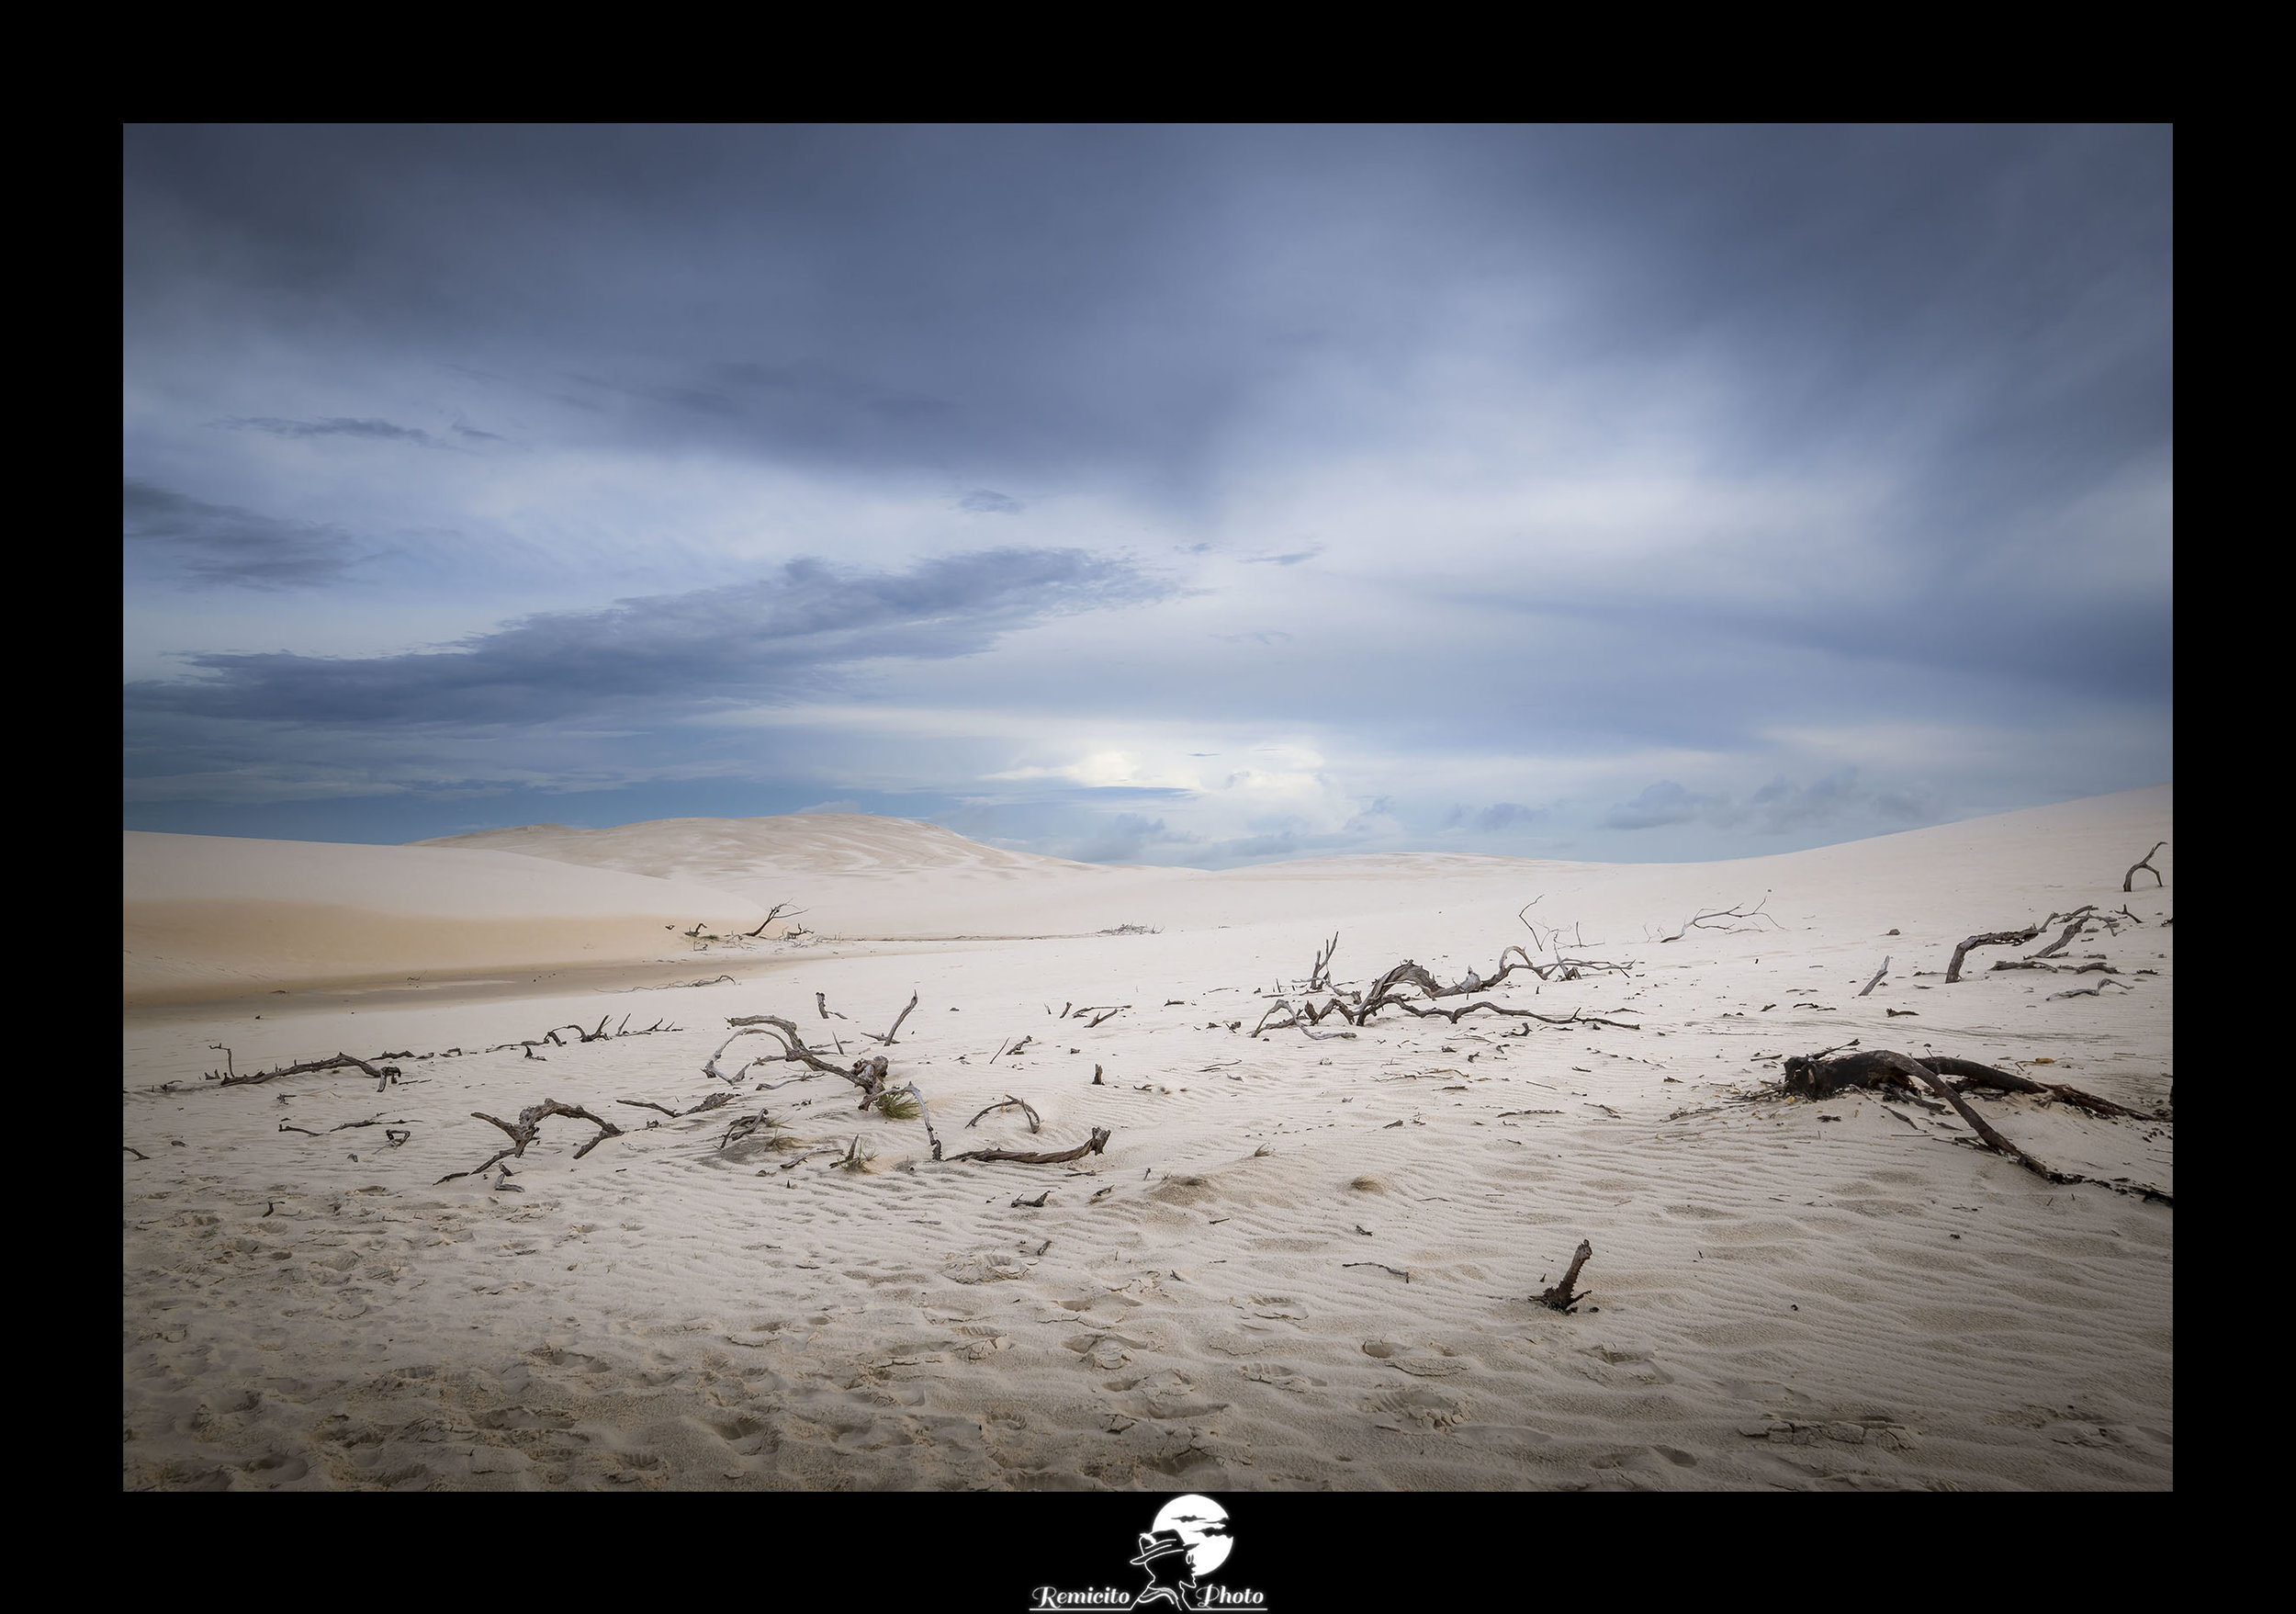 remicito photo, image du jour, photo du jour, photo of the day, french photographe, photographe français, photo de paysage, photo parc brésil, photo désert brésil, photo voyage brésil, landscape photography, desert photography, belle photo, idée cadeau, belle photo déco, les terres obscures, dark lands